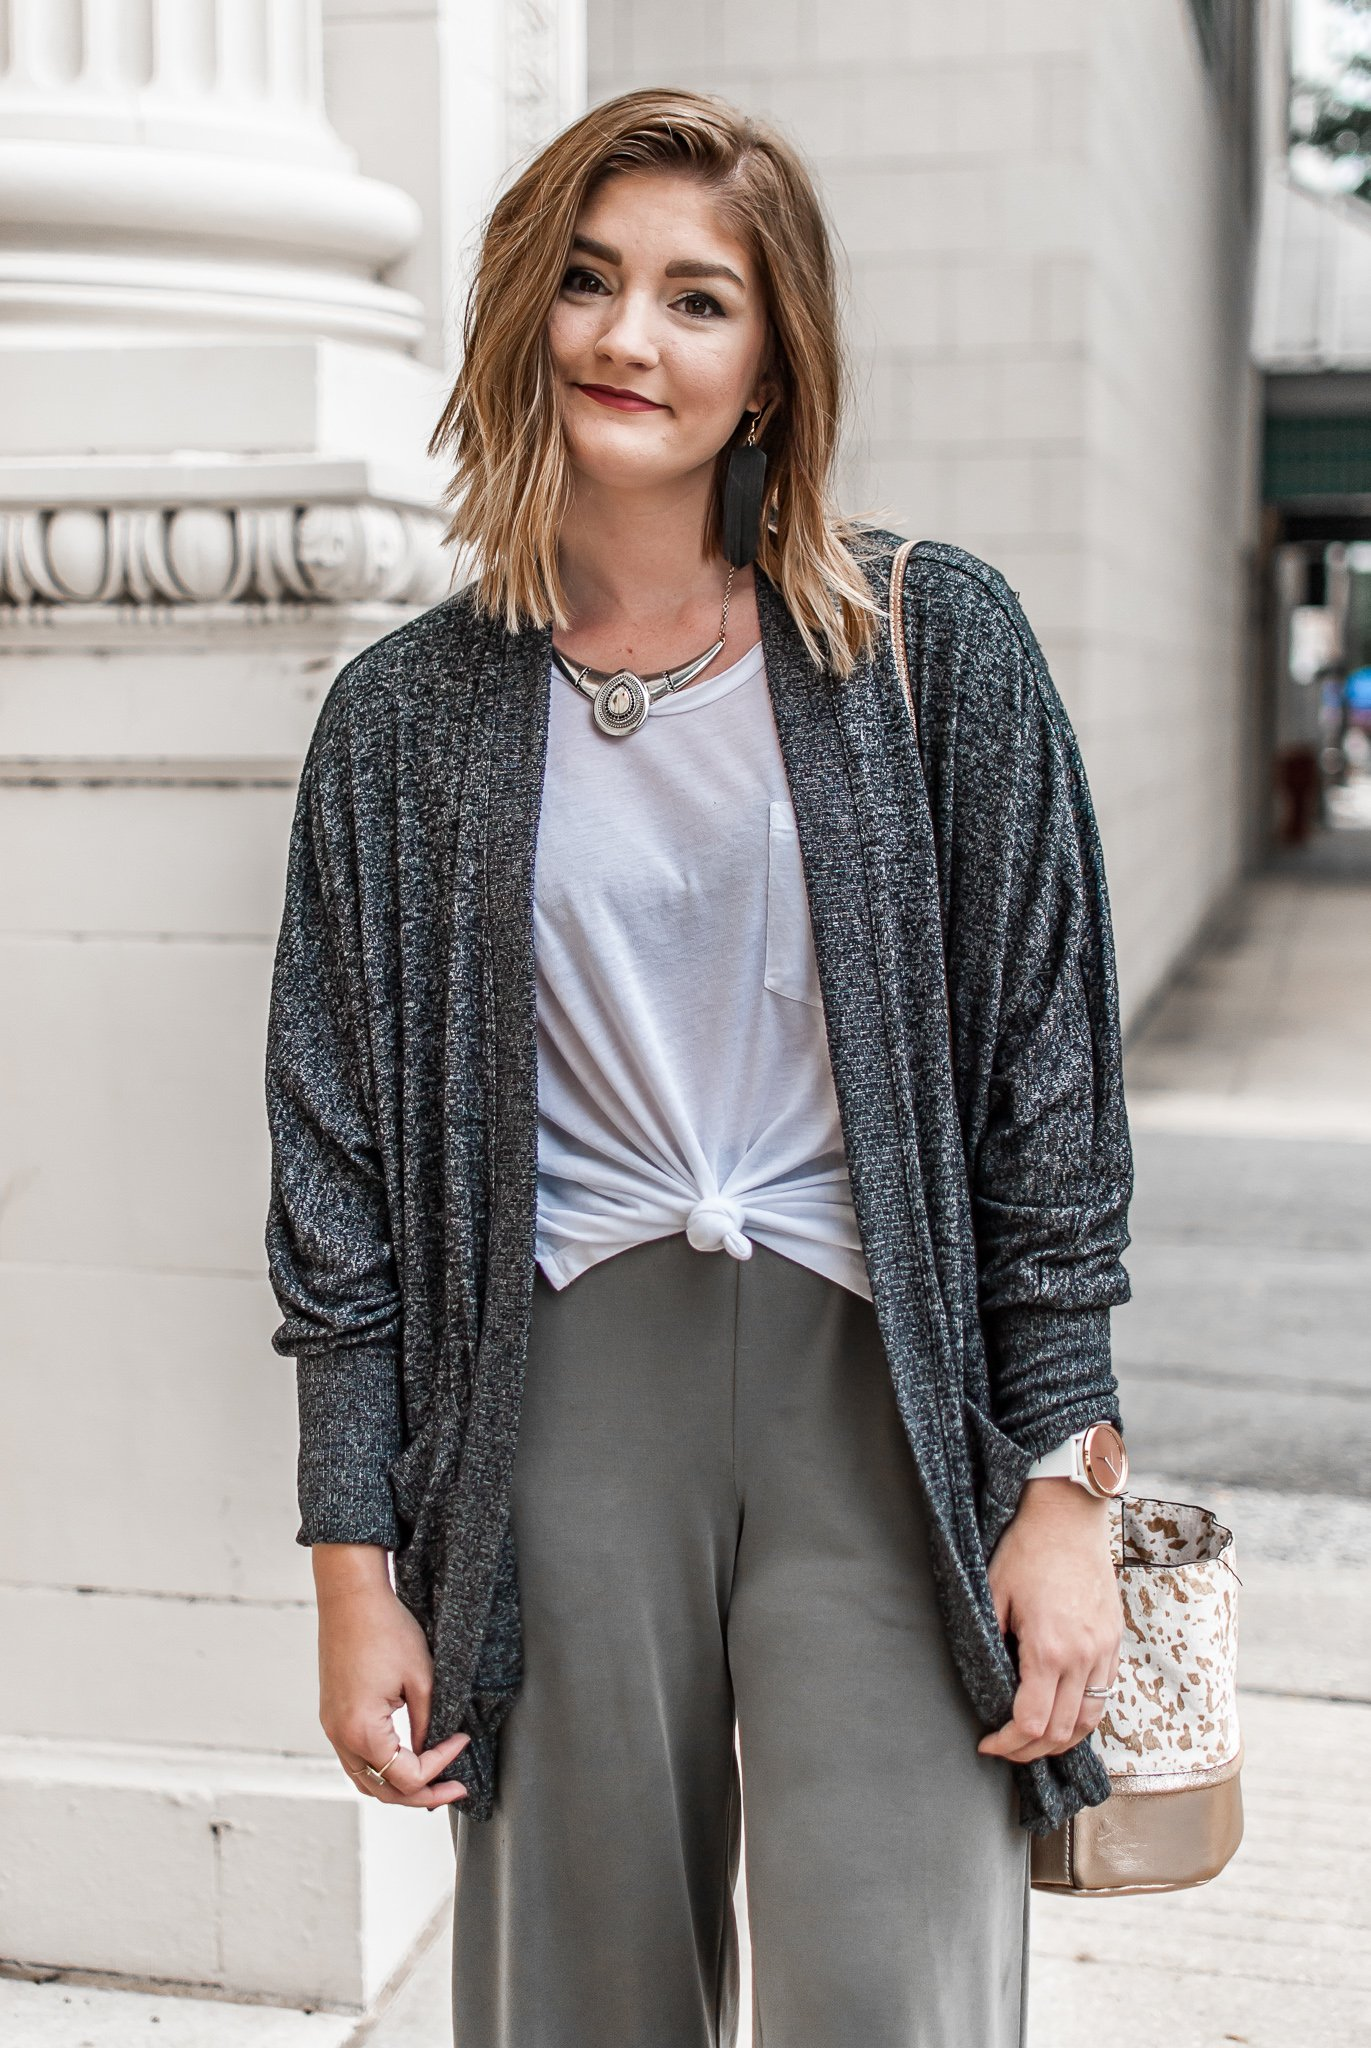 how to dress up your favorite comfy clothes